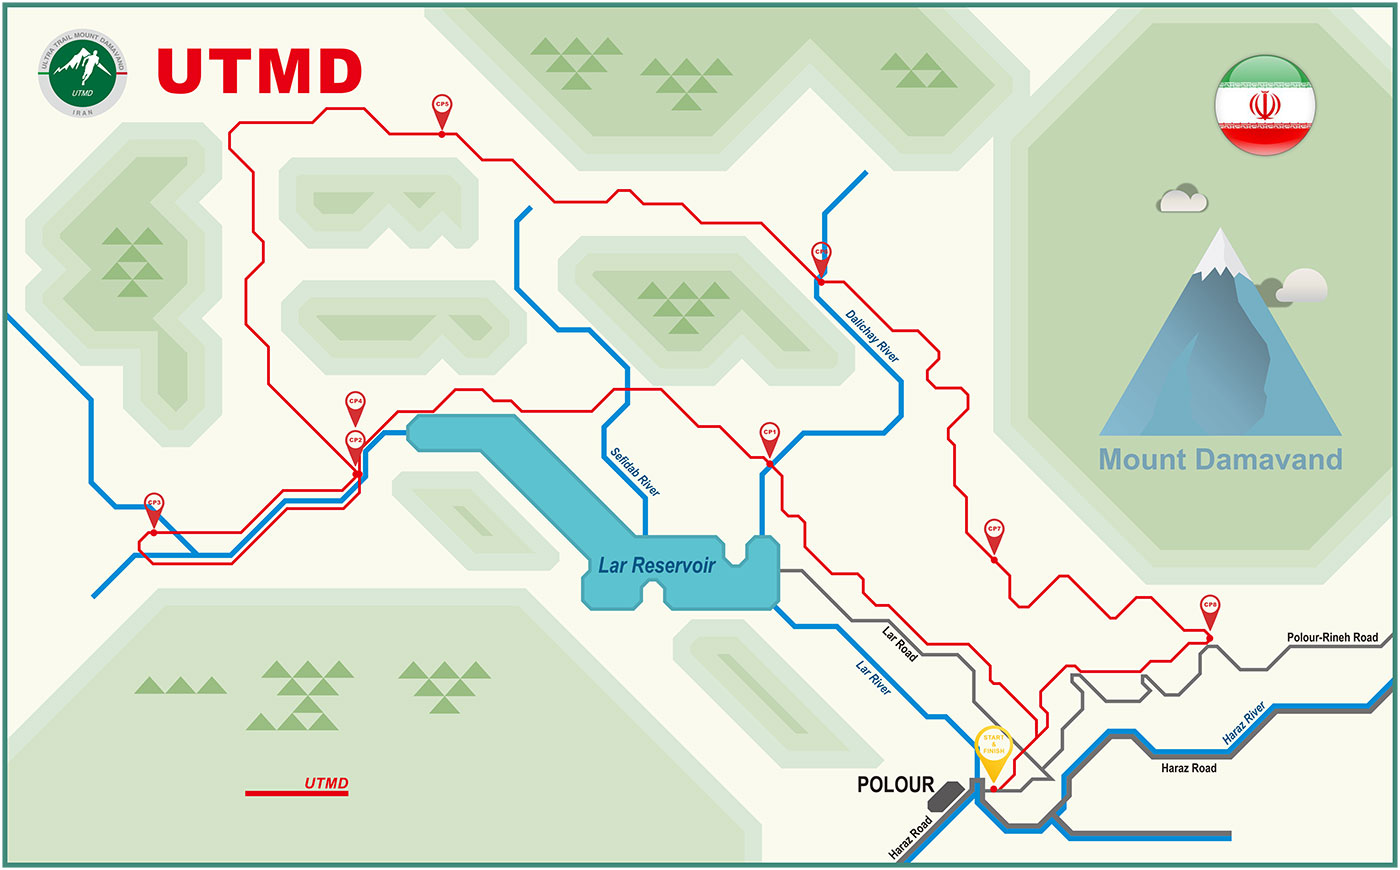 Utmd-course-map-utmd